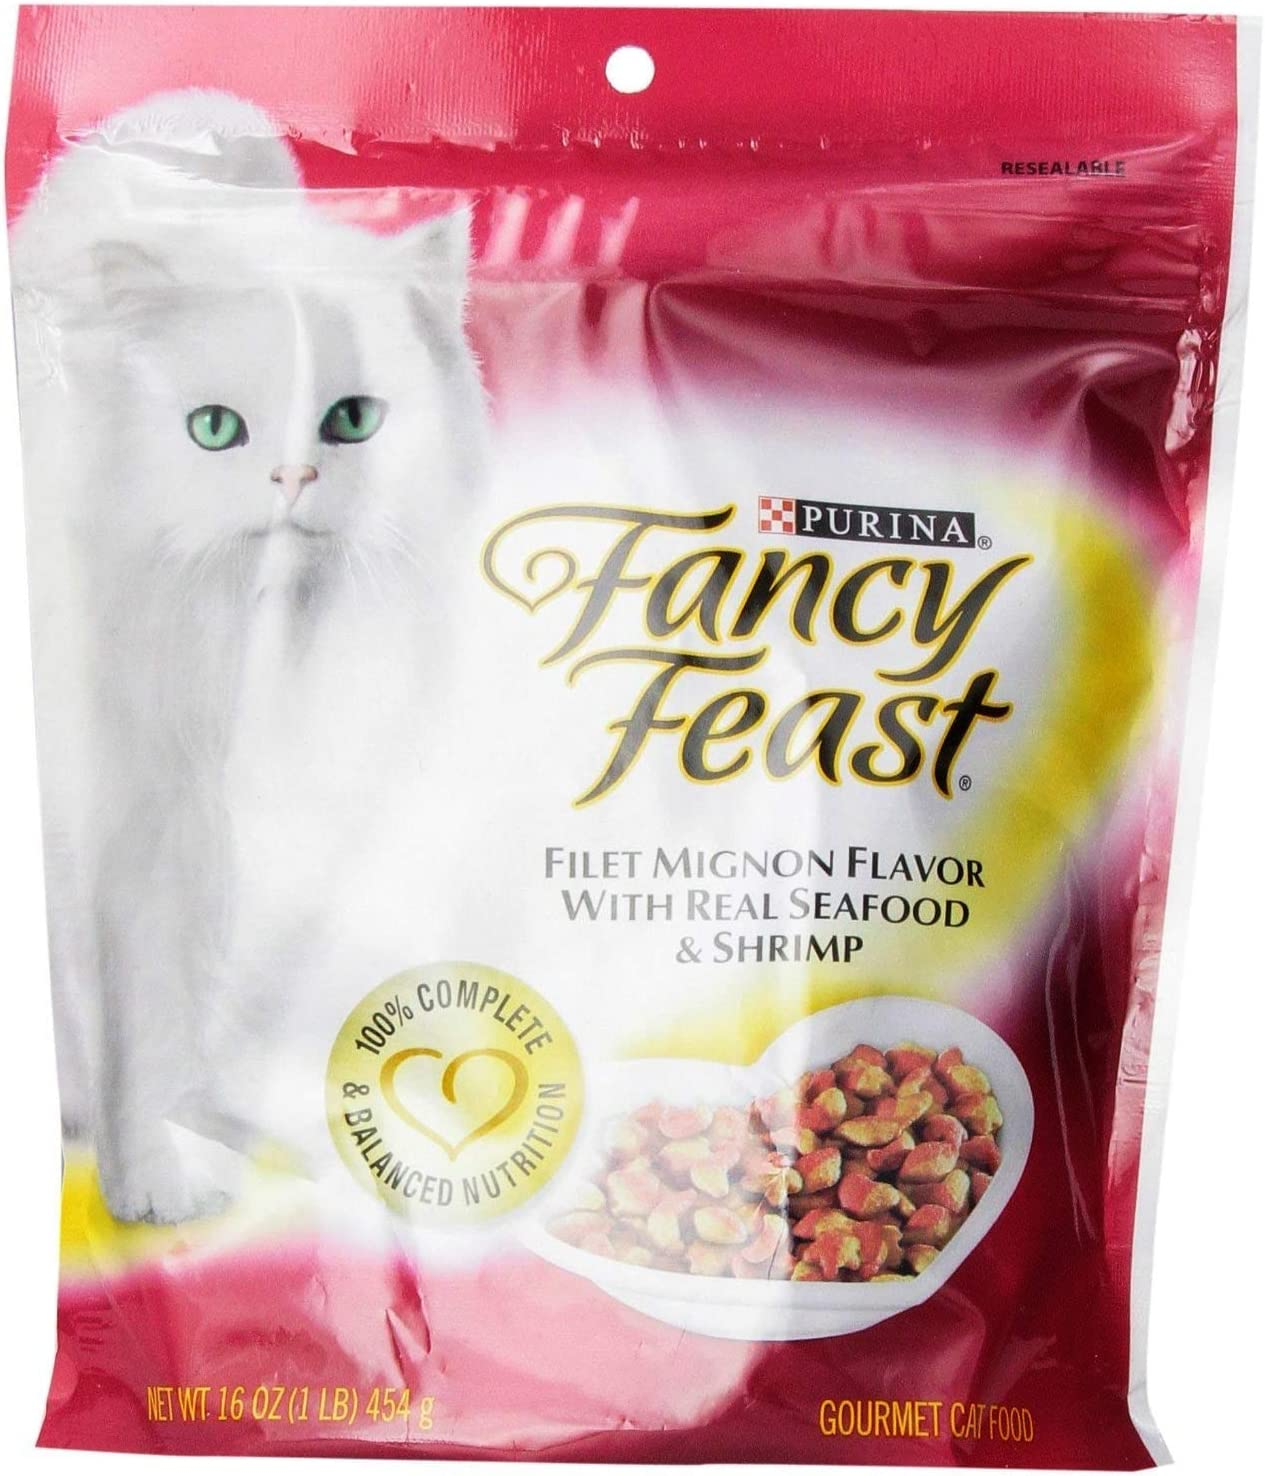 Purina Fancy Feast Gourmet Cat Food, Filet Mignon Flavor with Real Seafood & Shrimp, 16 oz. - Pack of 2